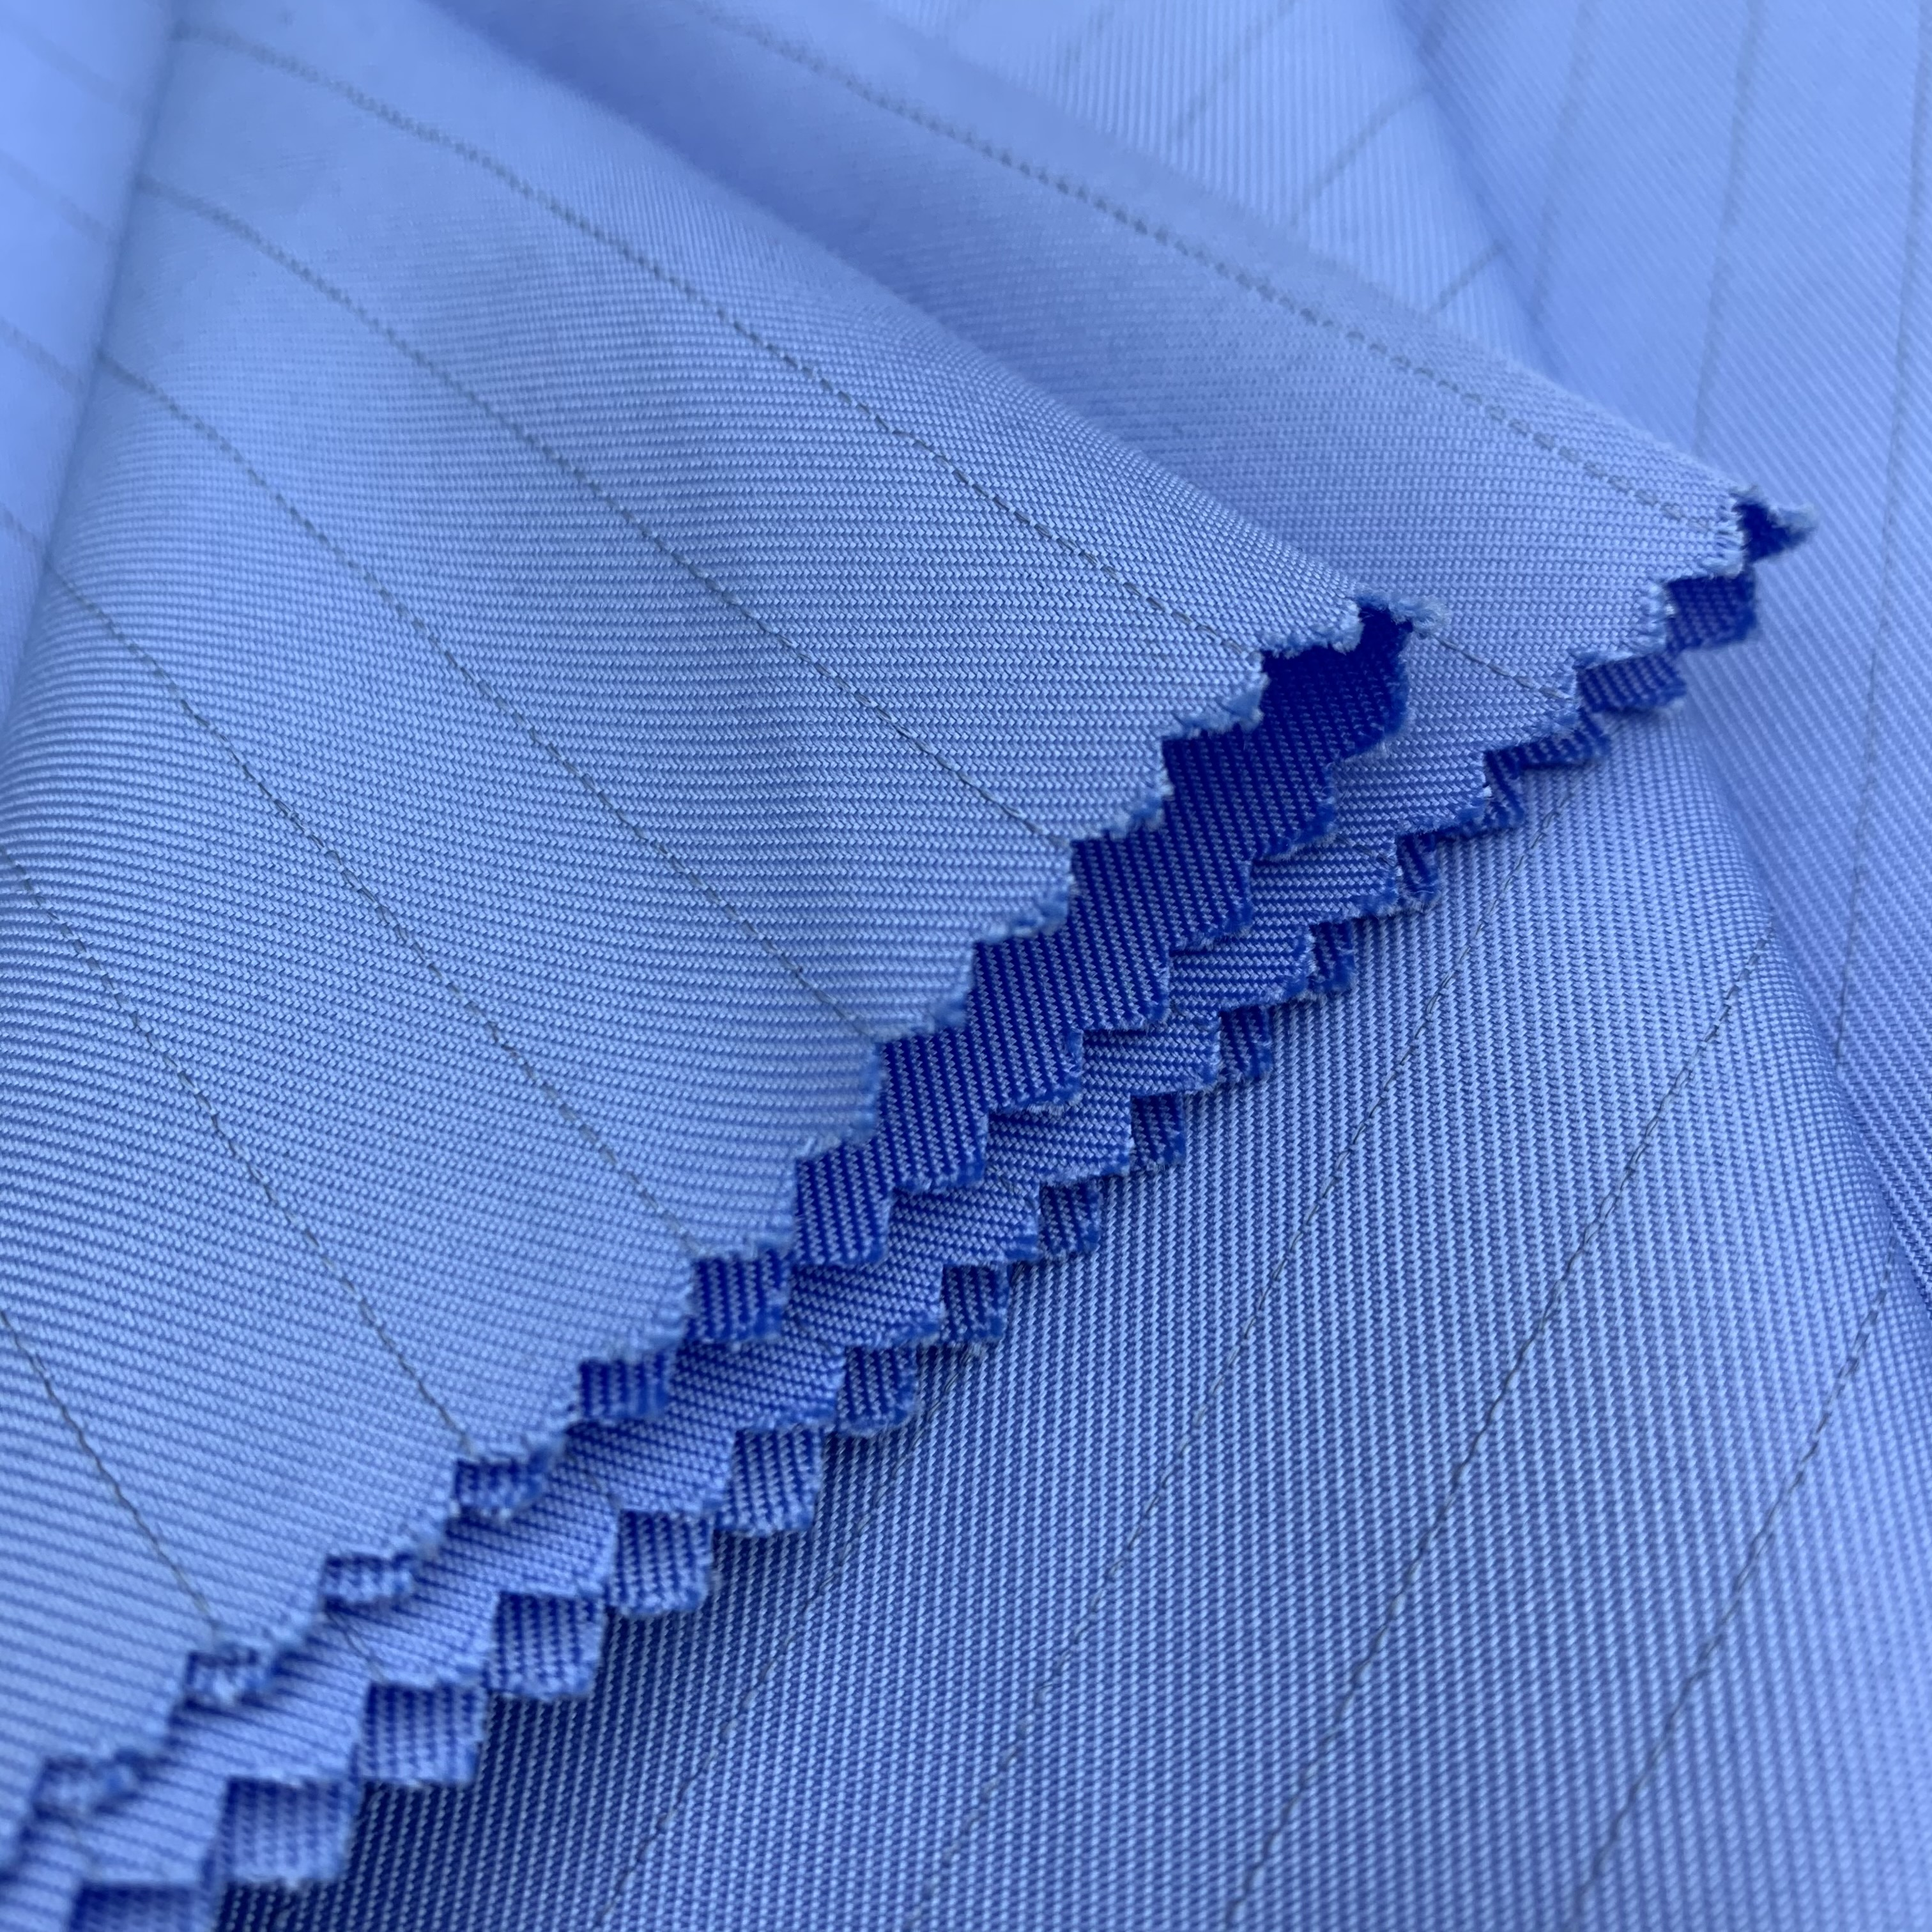 Cheap Anti-static 150D/144F*150D/144F Twill Fabric 145gsm 100% Polyester for functional special hospital and food wear